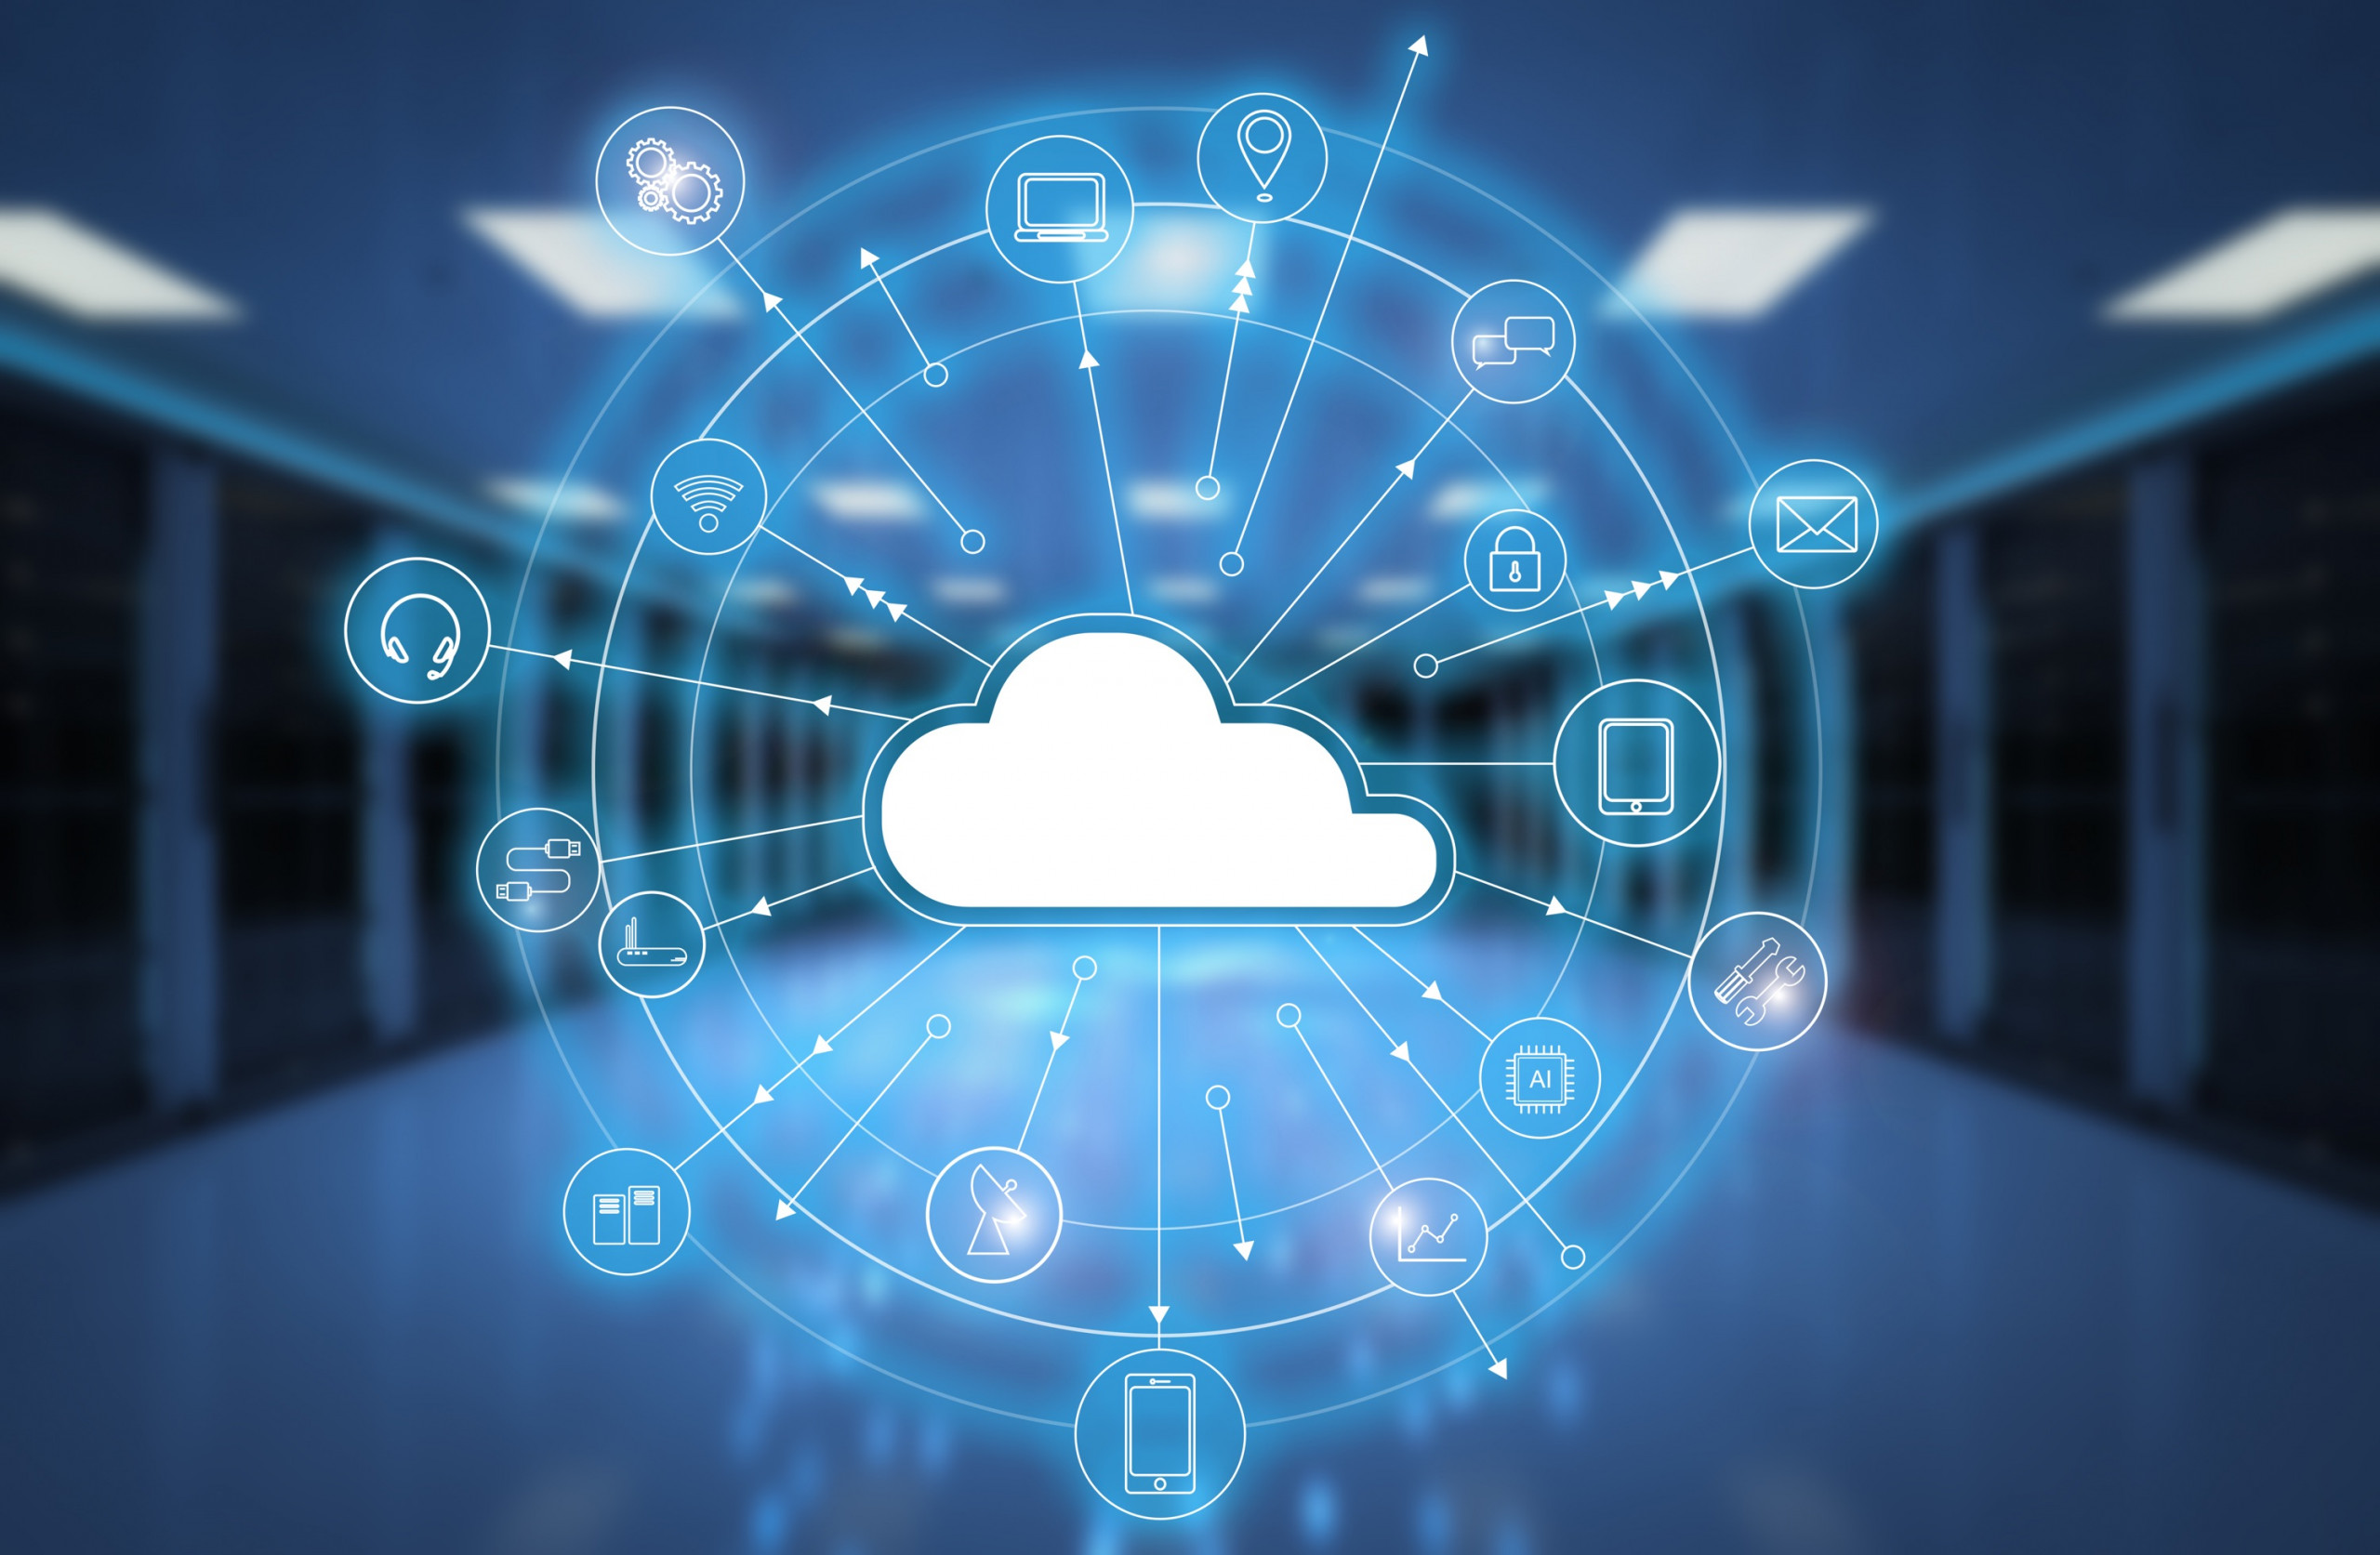 Take full advantage of Cloud architectures while embracing new DevOps approaches such as continuous development and continuous integration.